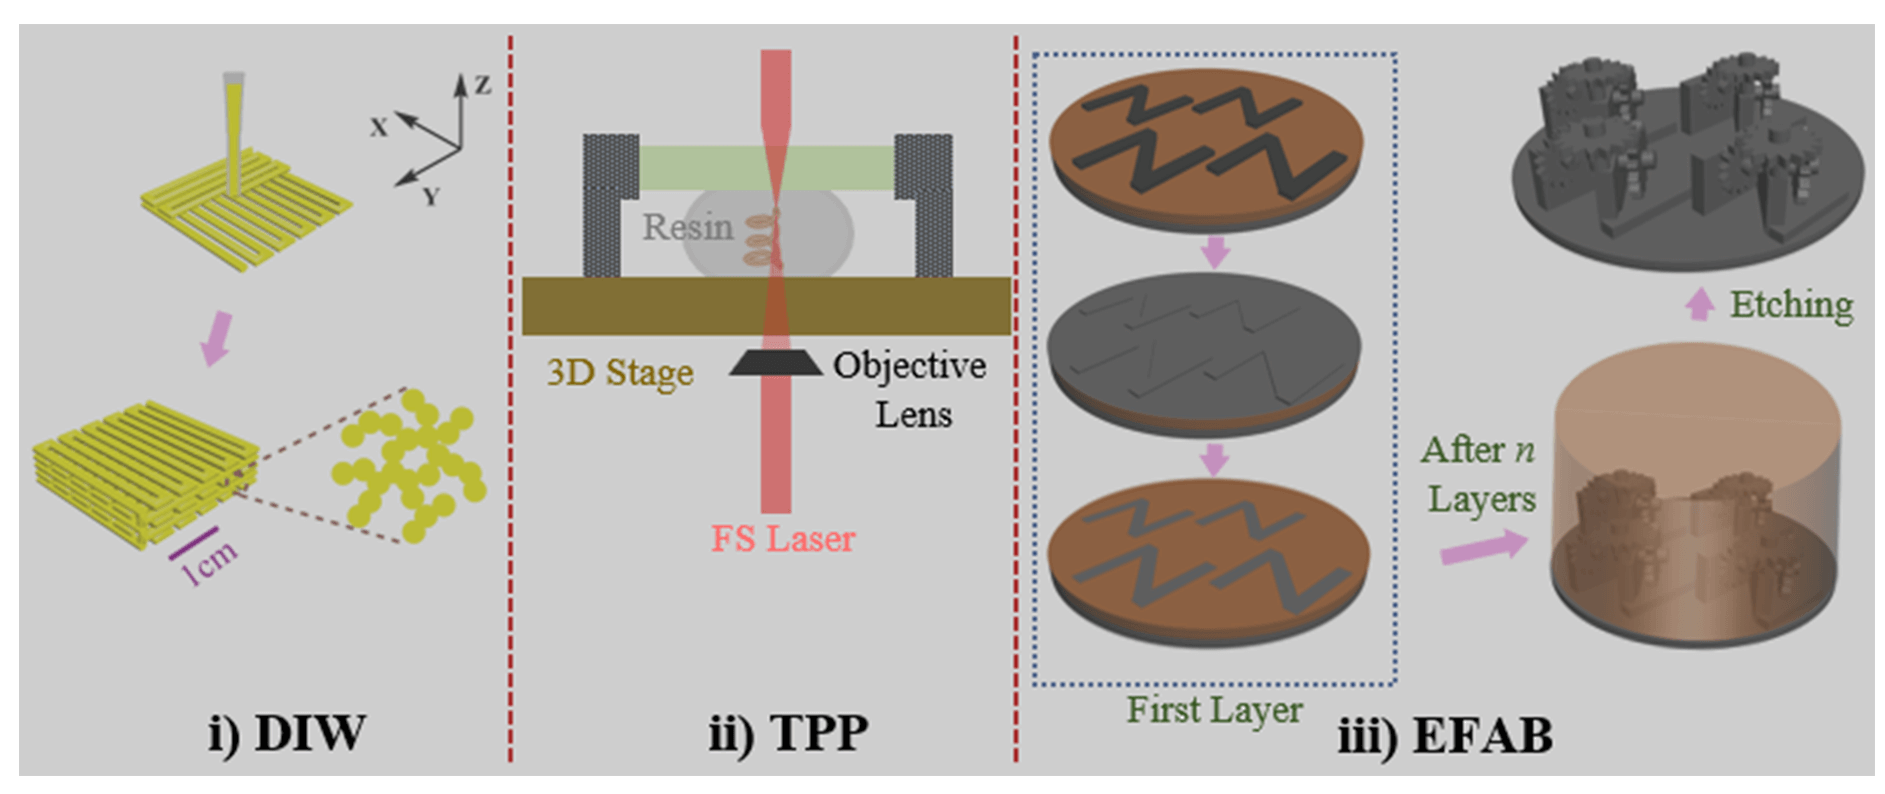 High-Precision Three-Dimensional Printing in a Flexible, Low-Cost and Versatile Way: A Review